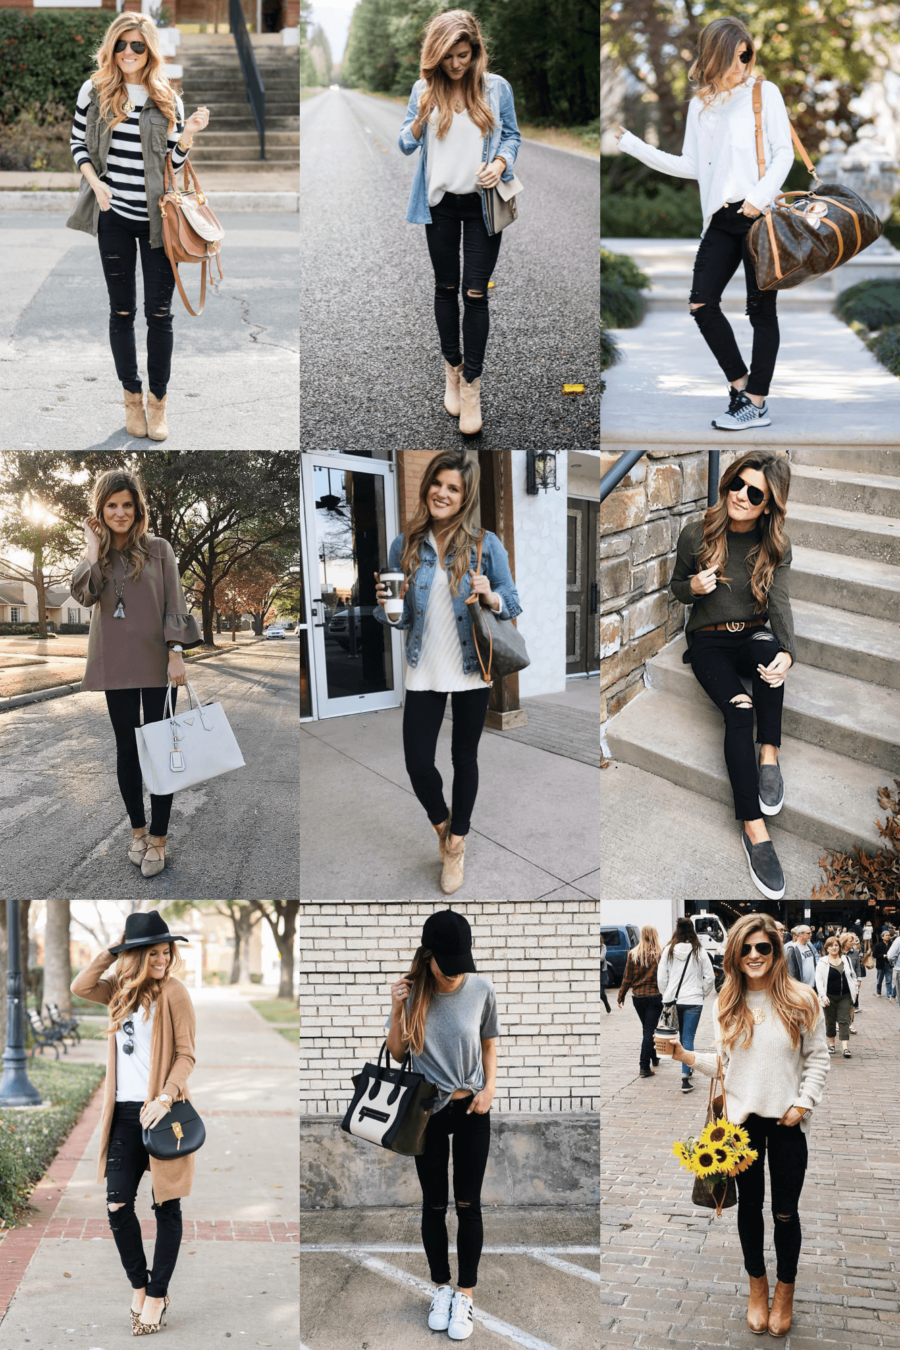 wholesale dealer 08a07 910a4 What to wear with black jeans - 30+ Black Jeans Outfit Ideas